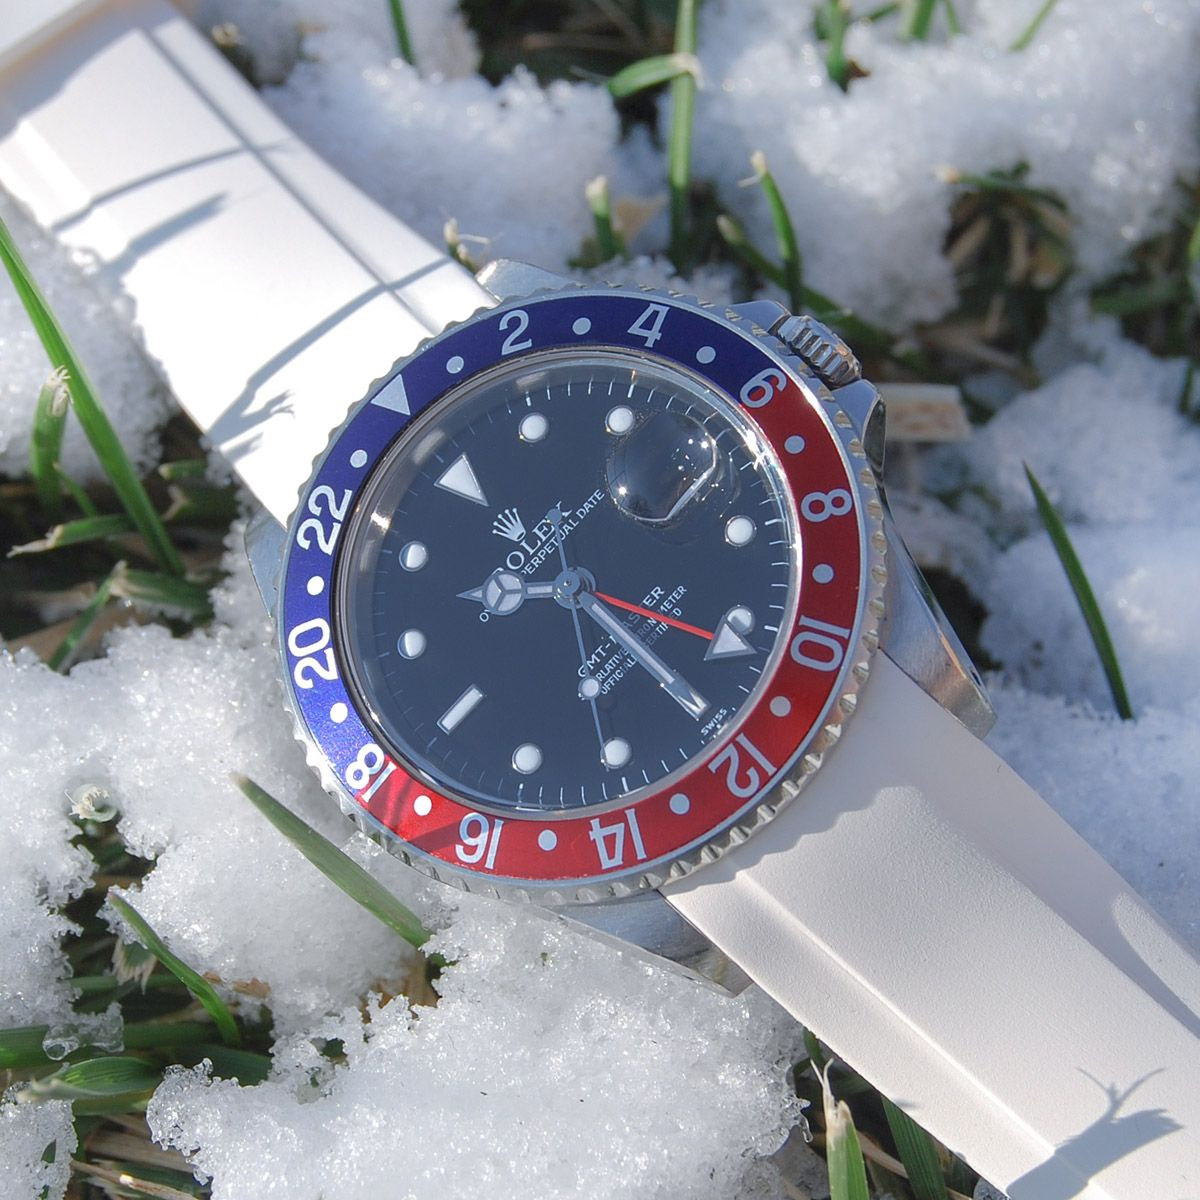 Everest Rubber Strap for Rolex Rubber watches, Rolex